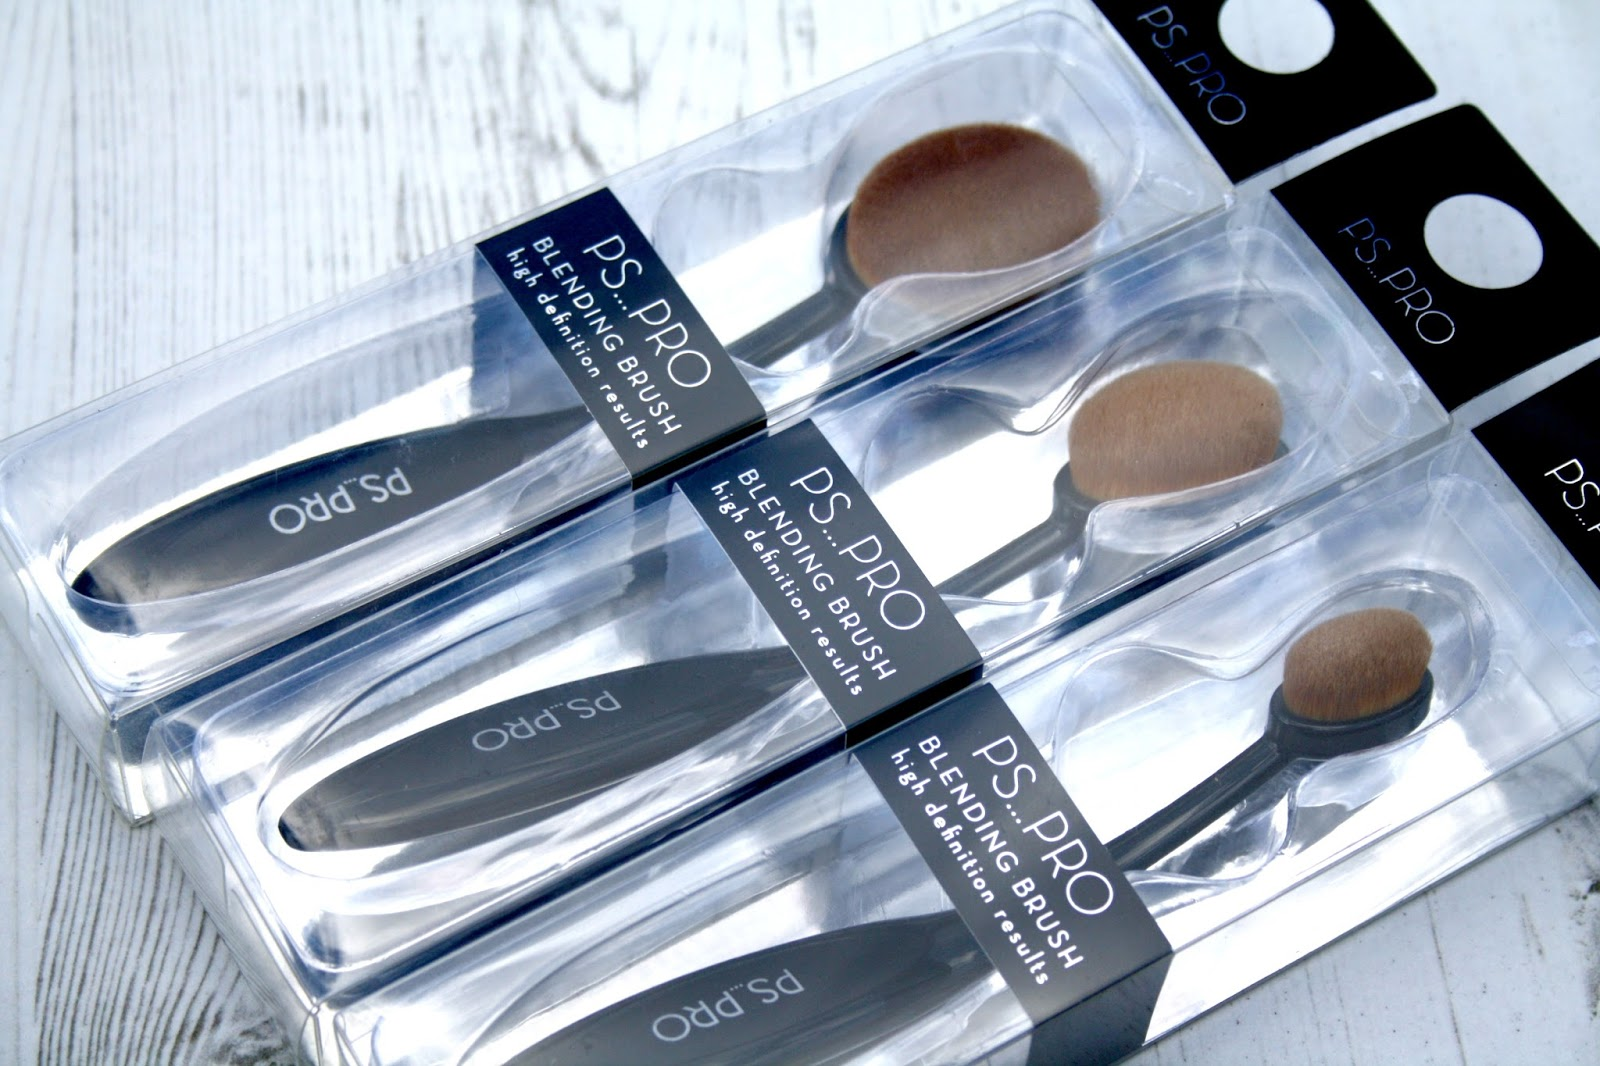 Beautyqueenuk Primark Ps Pro Oval Brushes